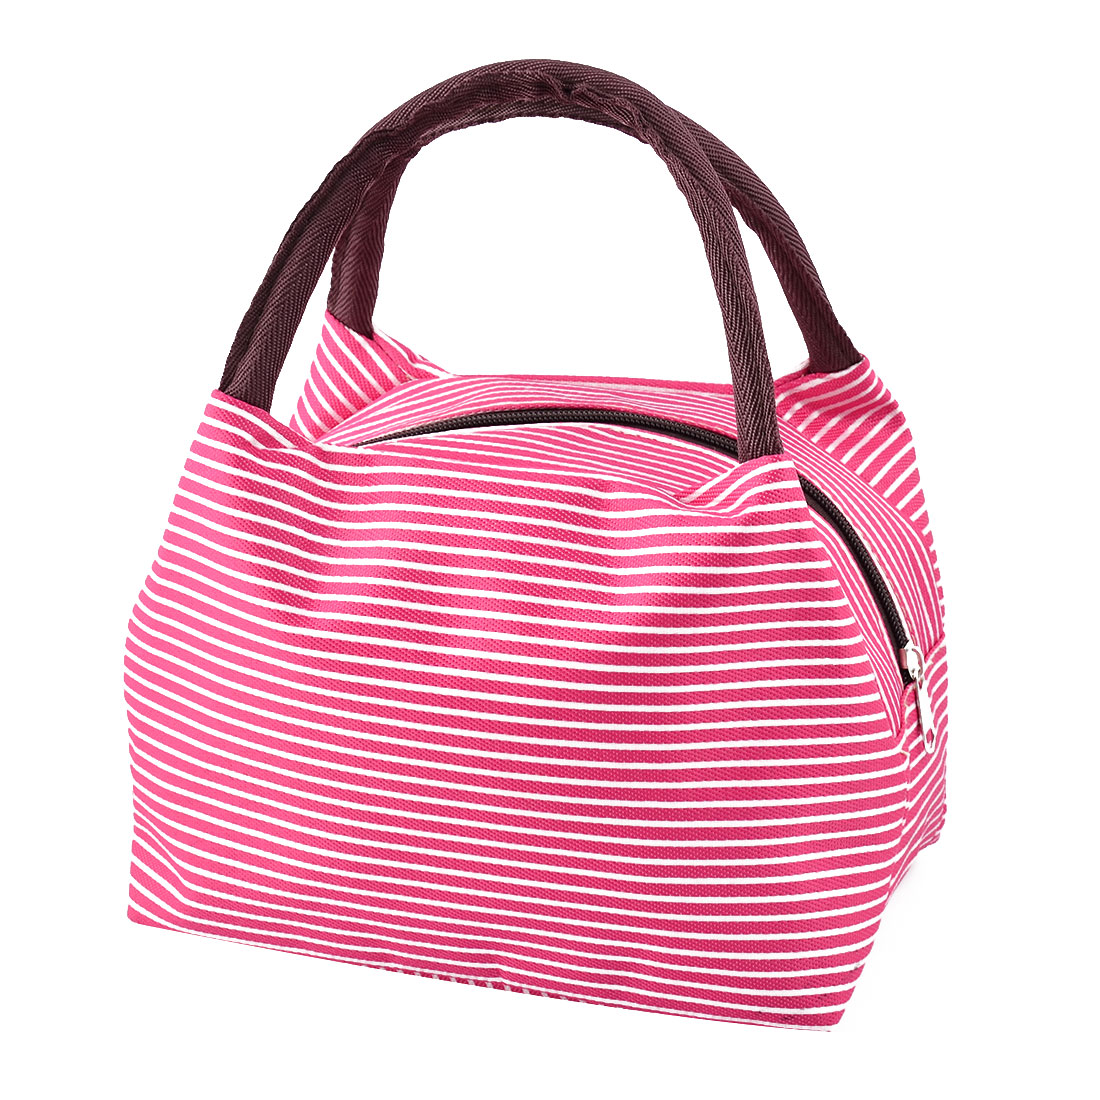 Outdoor Travel Linen Cotton Stripe Pattern Lunch Holder Cooler Pouch Tote Bag